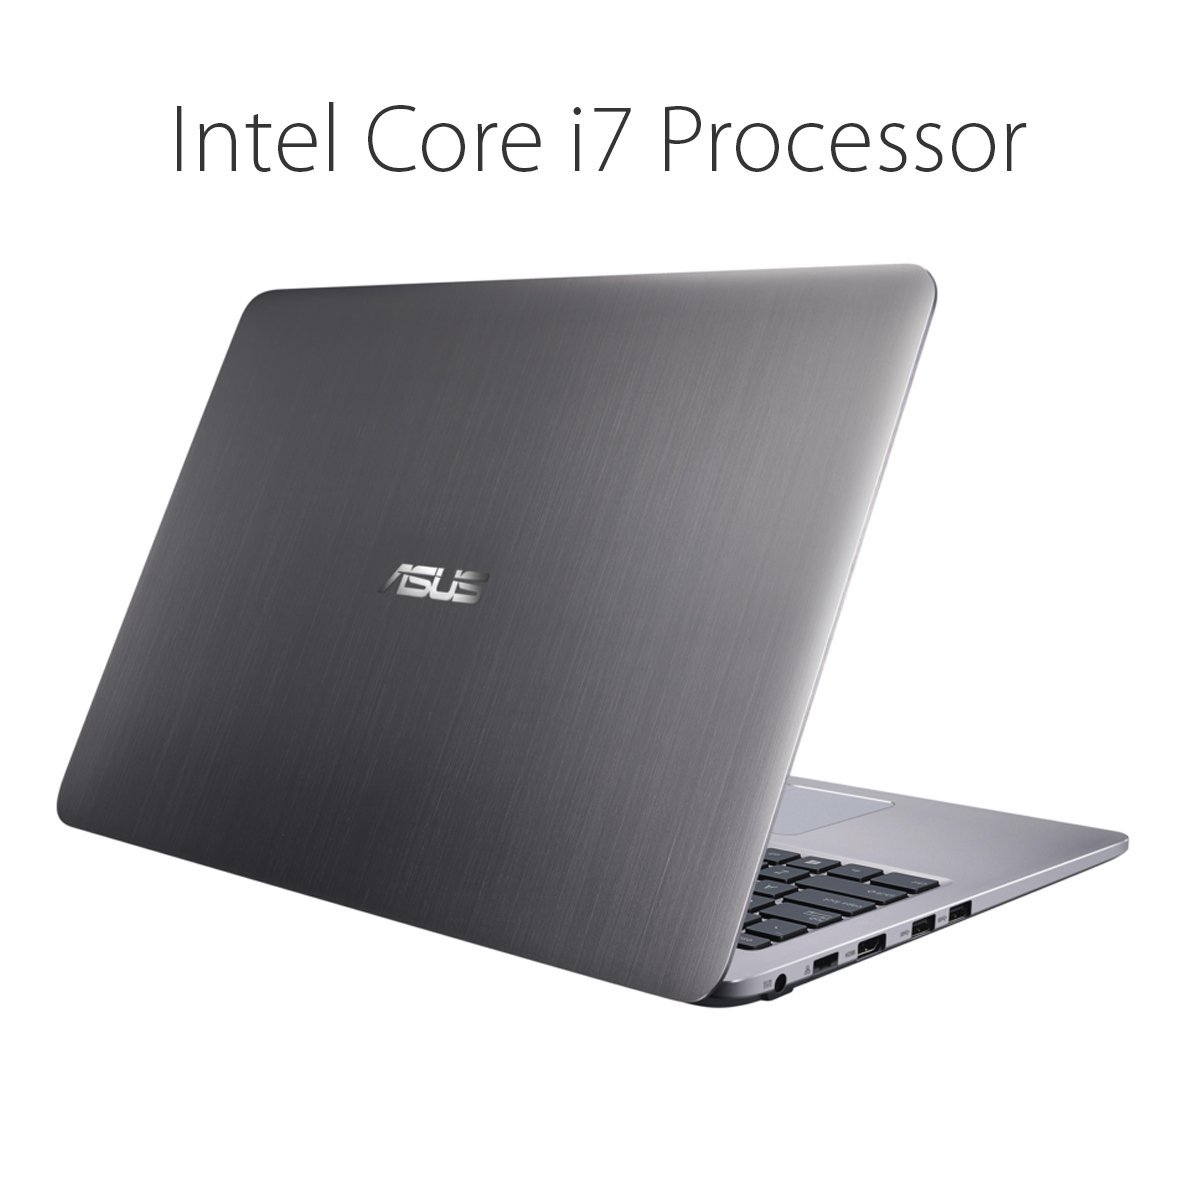 Amazon asus k501uw ab78 156 inch full hd gaming laptop intel amazon asus k501uw ab78 156 inch full hd gaming laptop intel core i7 gtx 960m 8gb ddr4 512gb ssd glacier grey computers accessories stopboris Image collections